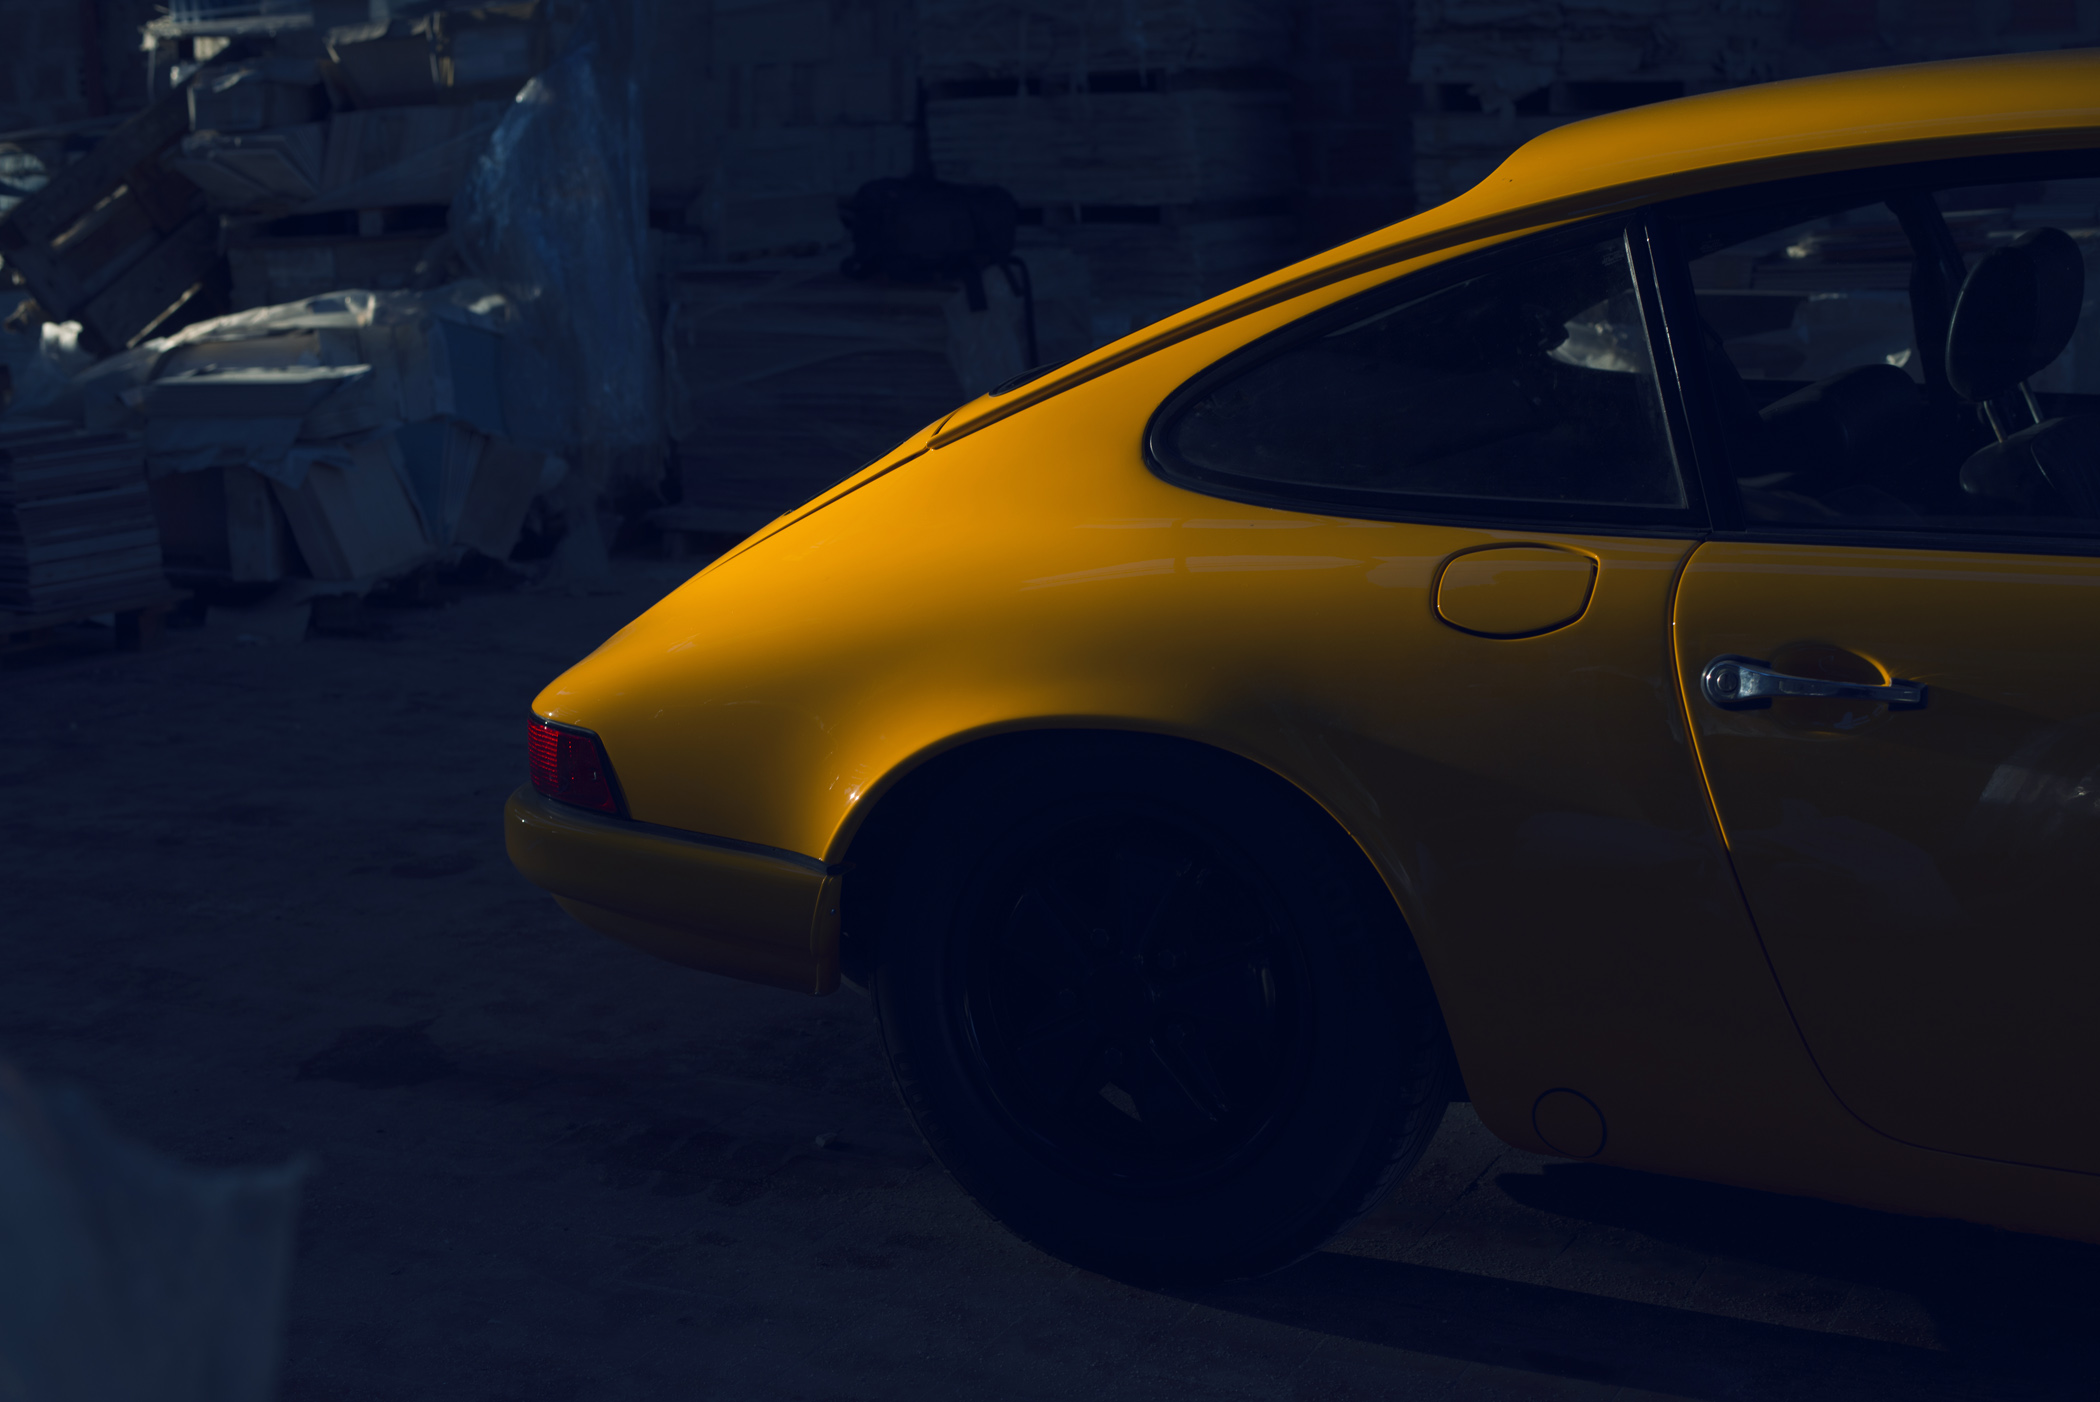 prsphoto_porsche_911t_yellow_05122018_95.jpg